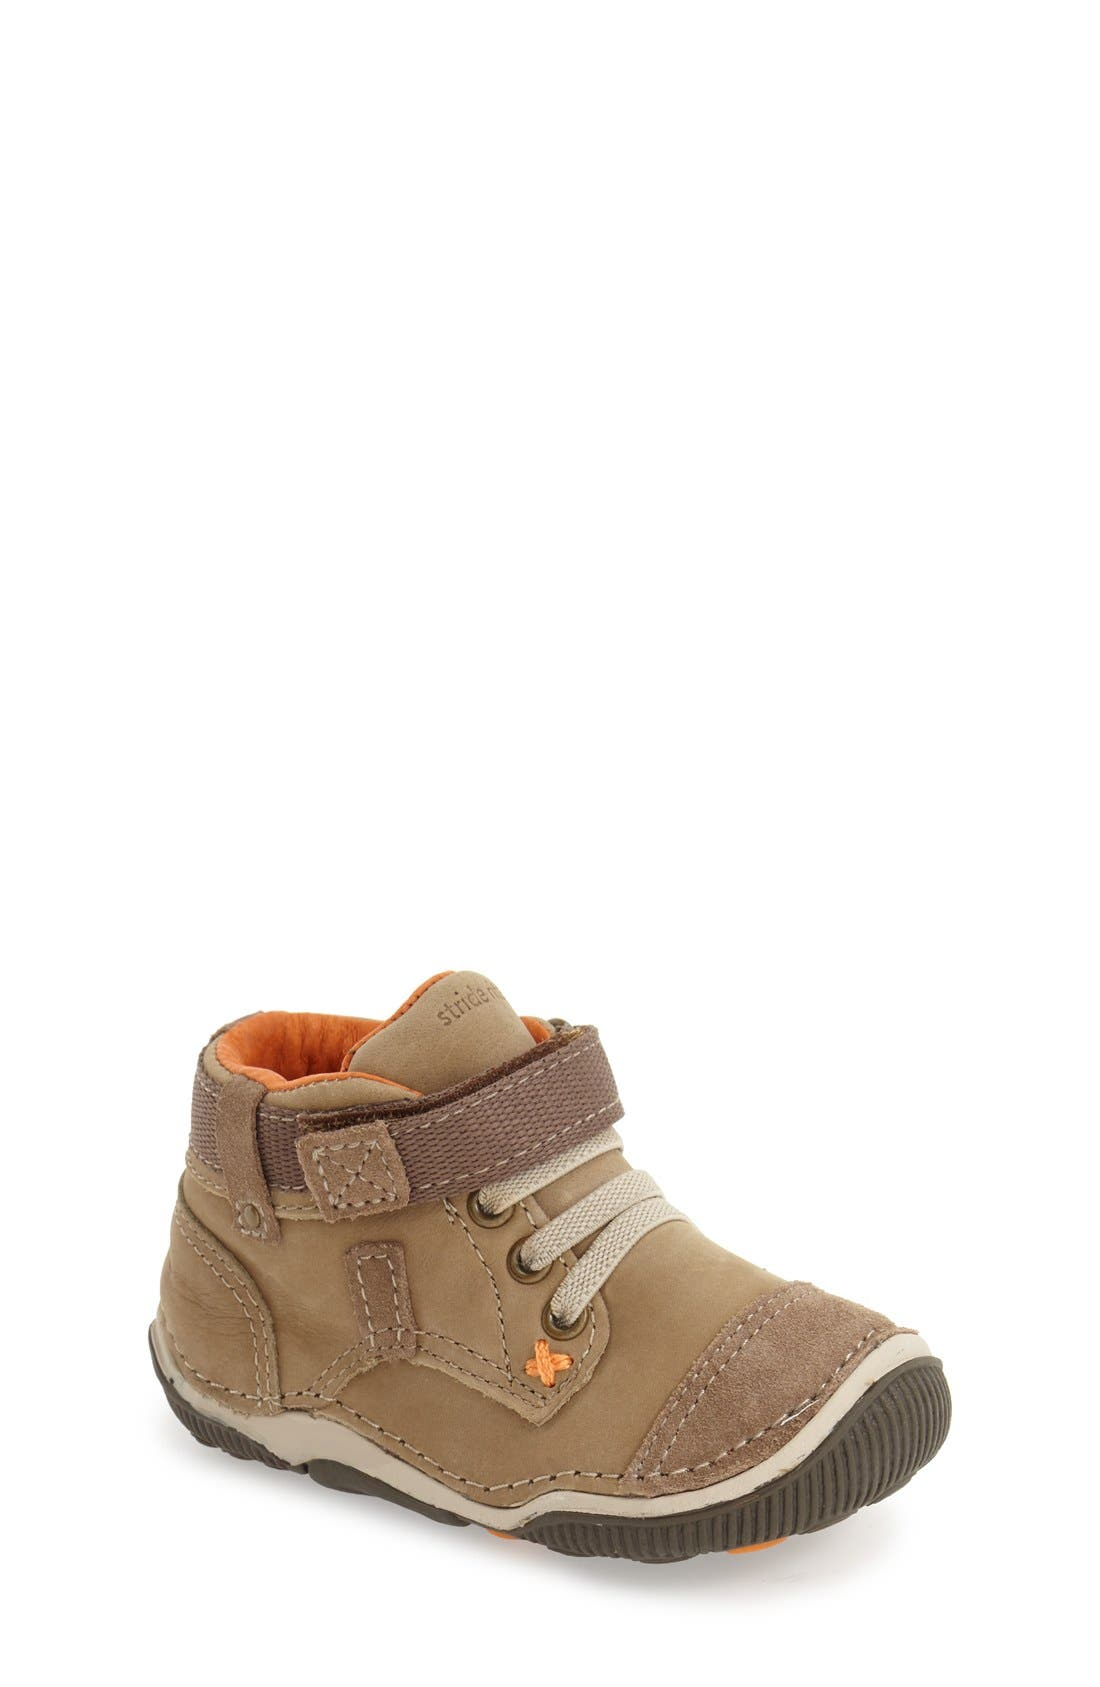 'Garrett' High Top Bootie Sneaker,                         Main,                         color, Brown